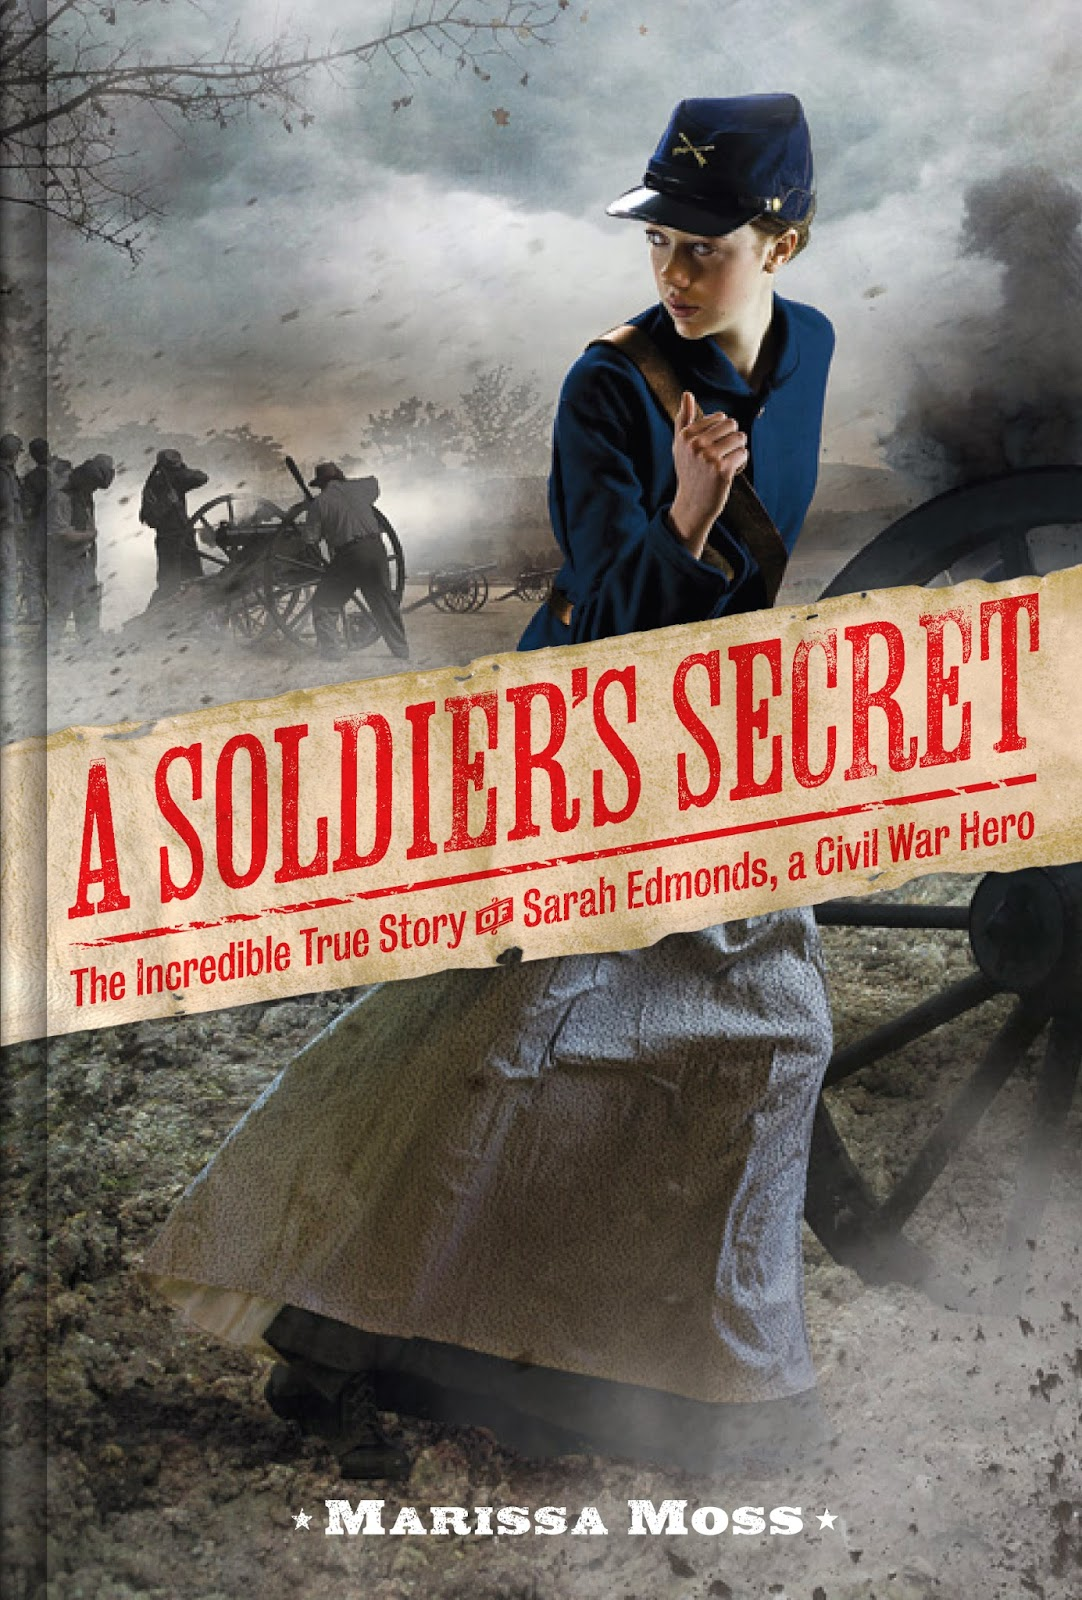 the hardships during civil war in a soldiers secret a novel by marissa moss Mystery & suspense nola brown is a really smart soldier who is badly damaged by childhood abuse she's supposed to be dead, but mortician jim zig five narrators perform this complex novel about the effect mental illness has on families, though cassandra campbell narrates the majority of the audiobook the story.